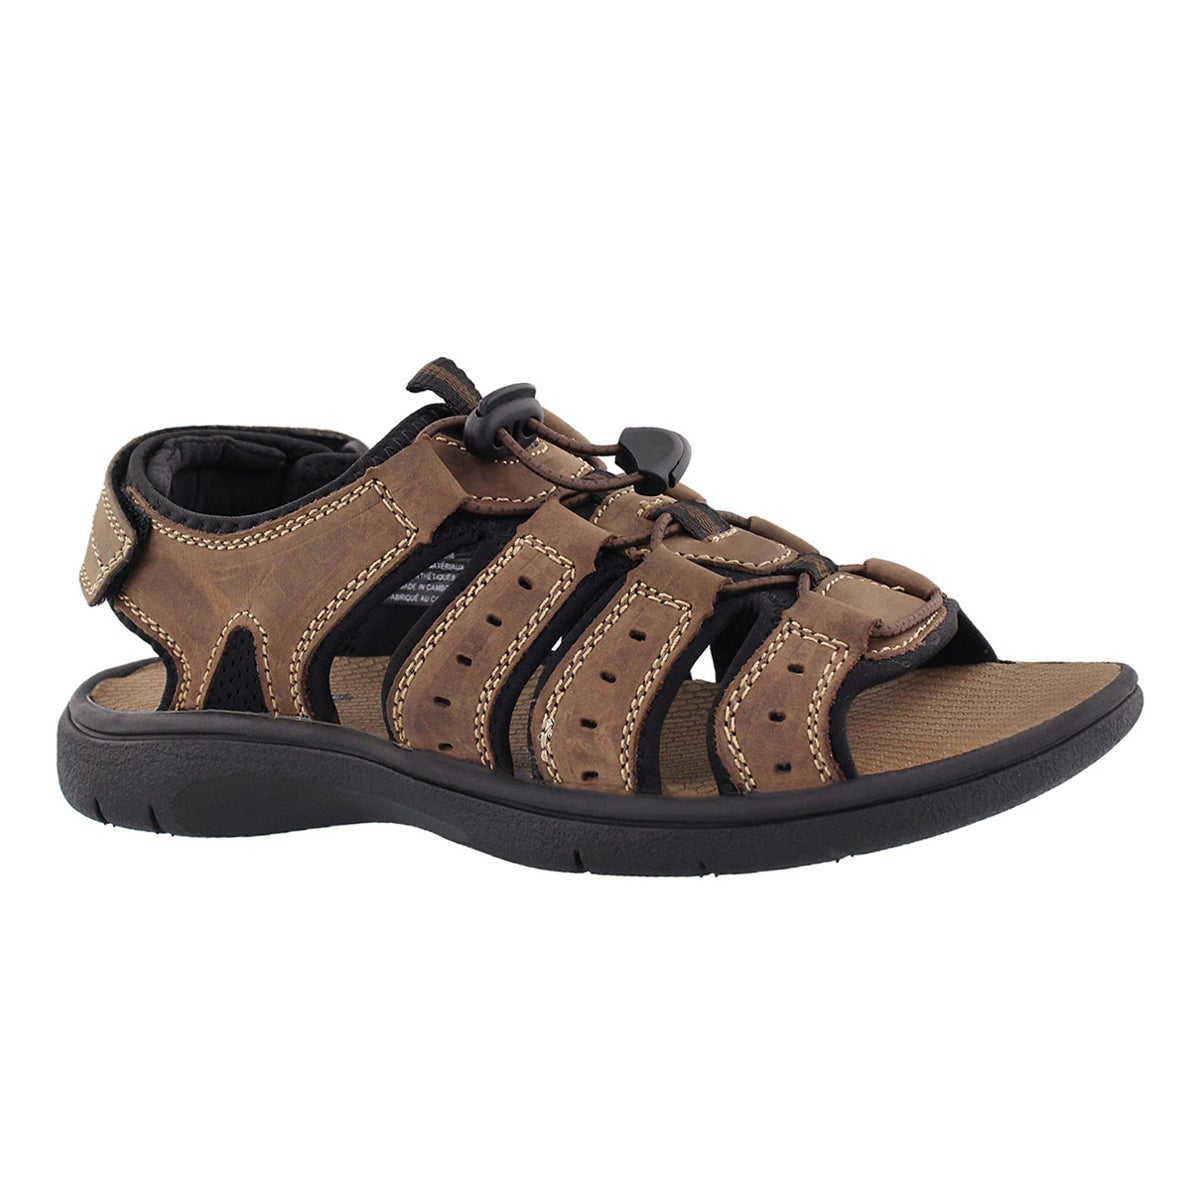 Men's LAZAR dark brown sport sandals